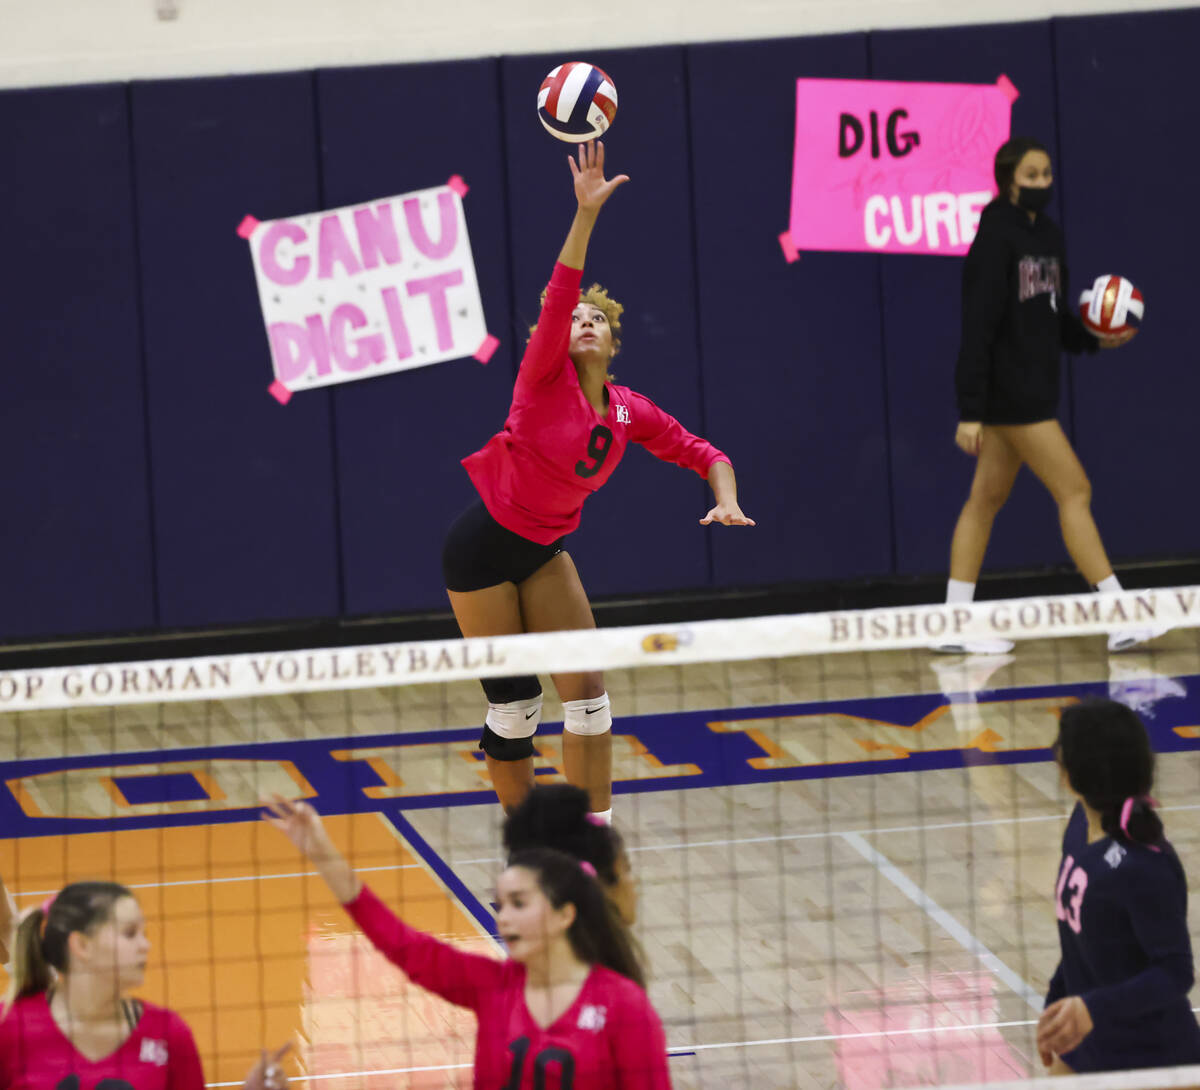 Bishop Gorman's outside hitter Imani Dambreville (9) serves the ball against Silverado during a ...